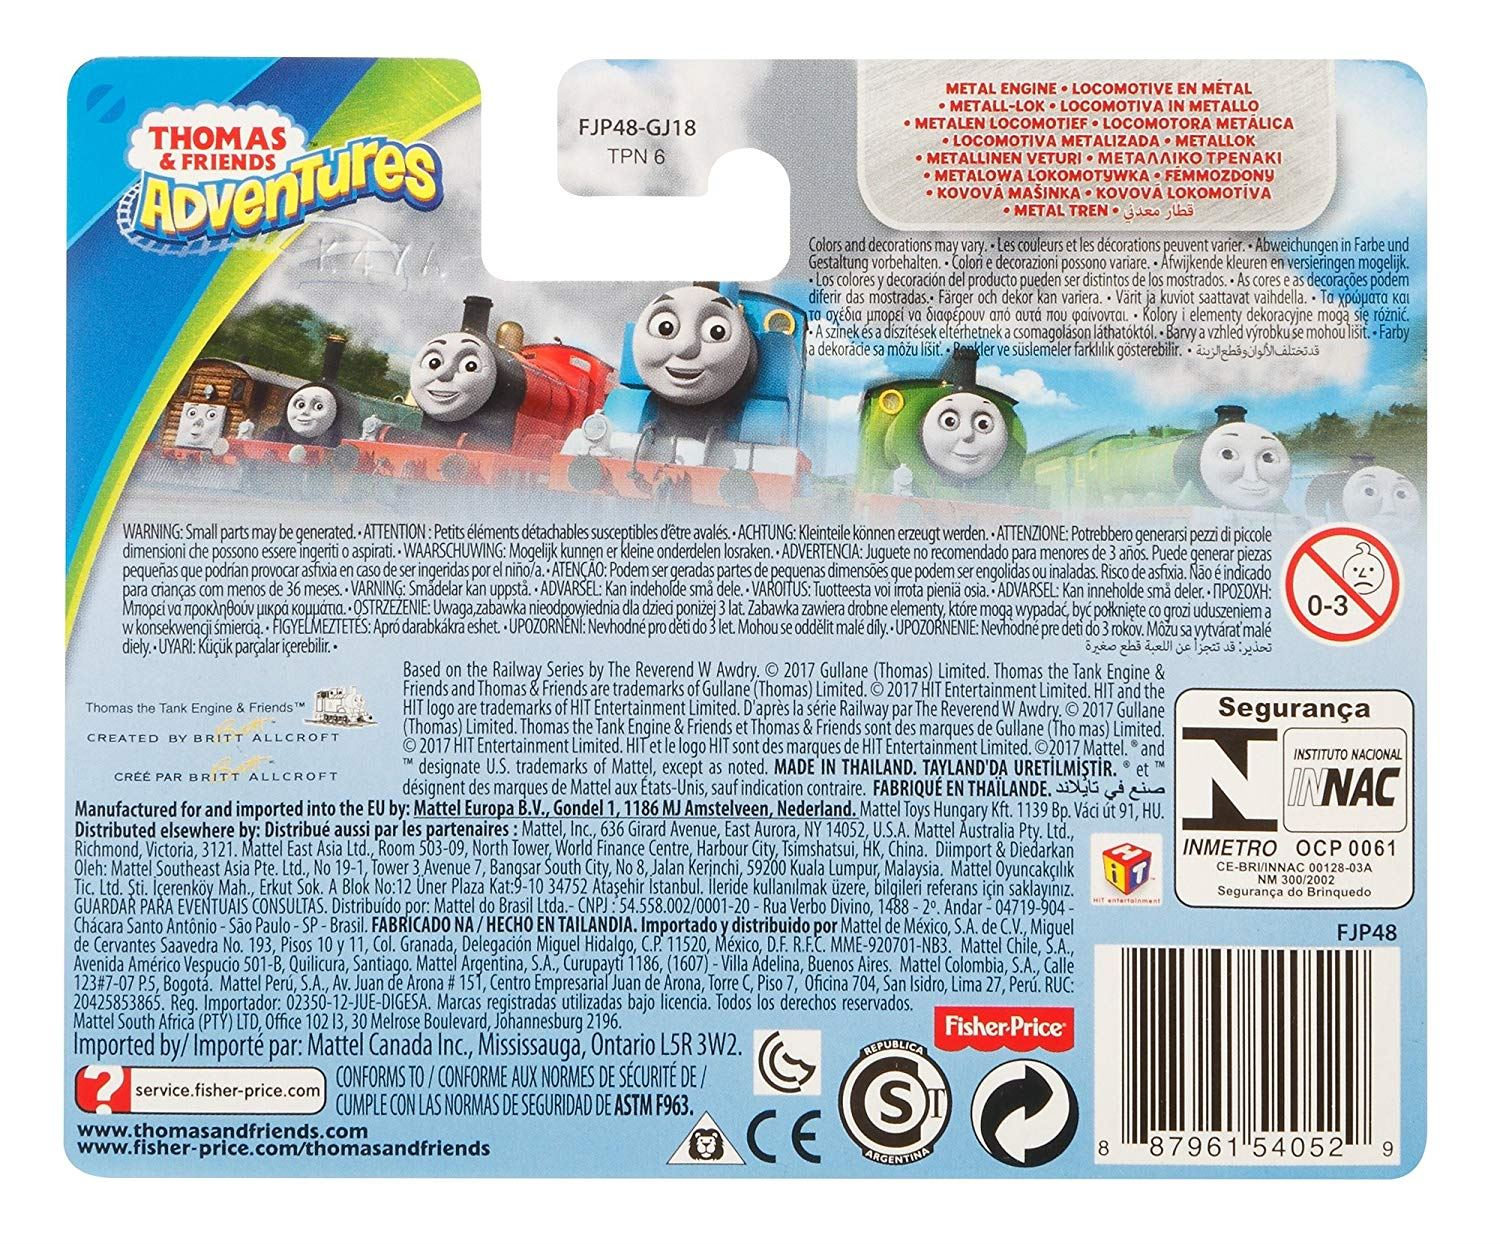 Thomas-amp-Friends-Adventures-Ferdinand-lexi-Shane-Dash-Huge-Bill-Trains Indexbild 10